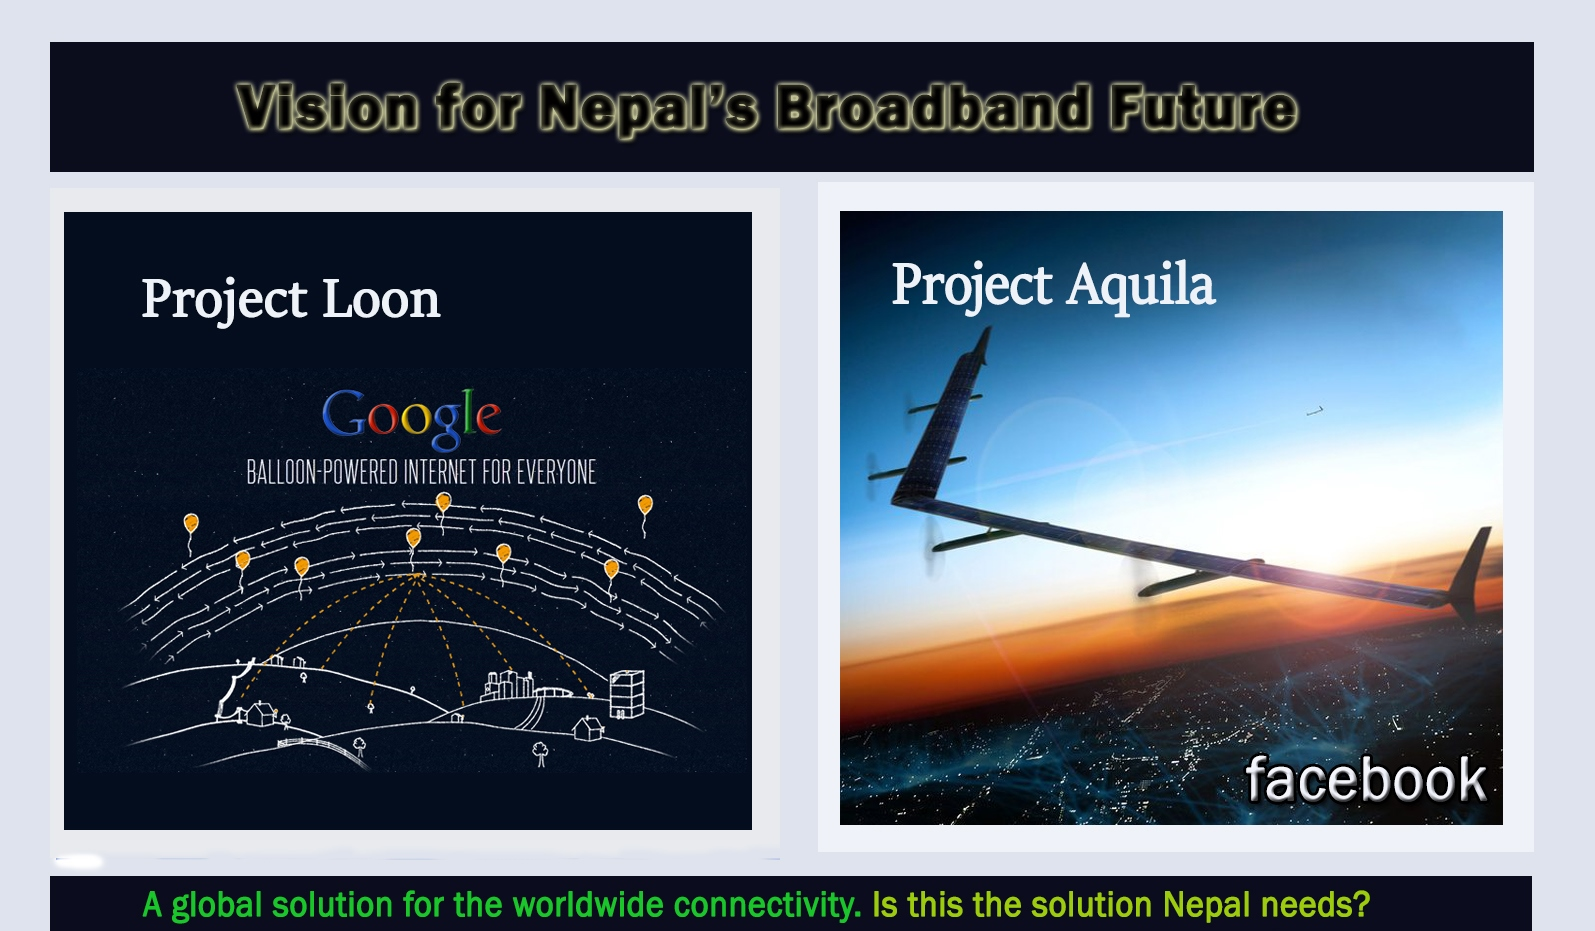 Nepal's Broadband Future : Google's Project Loon and Facebook's Aquila